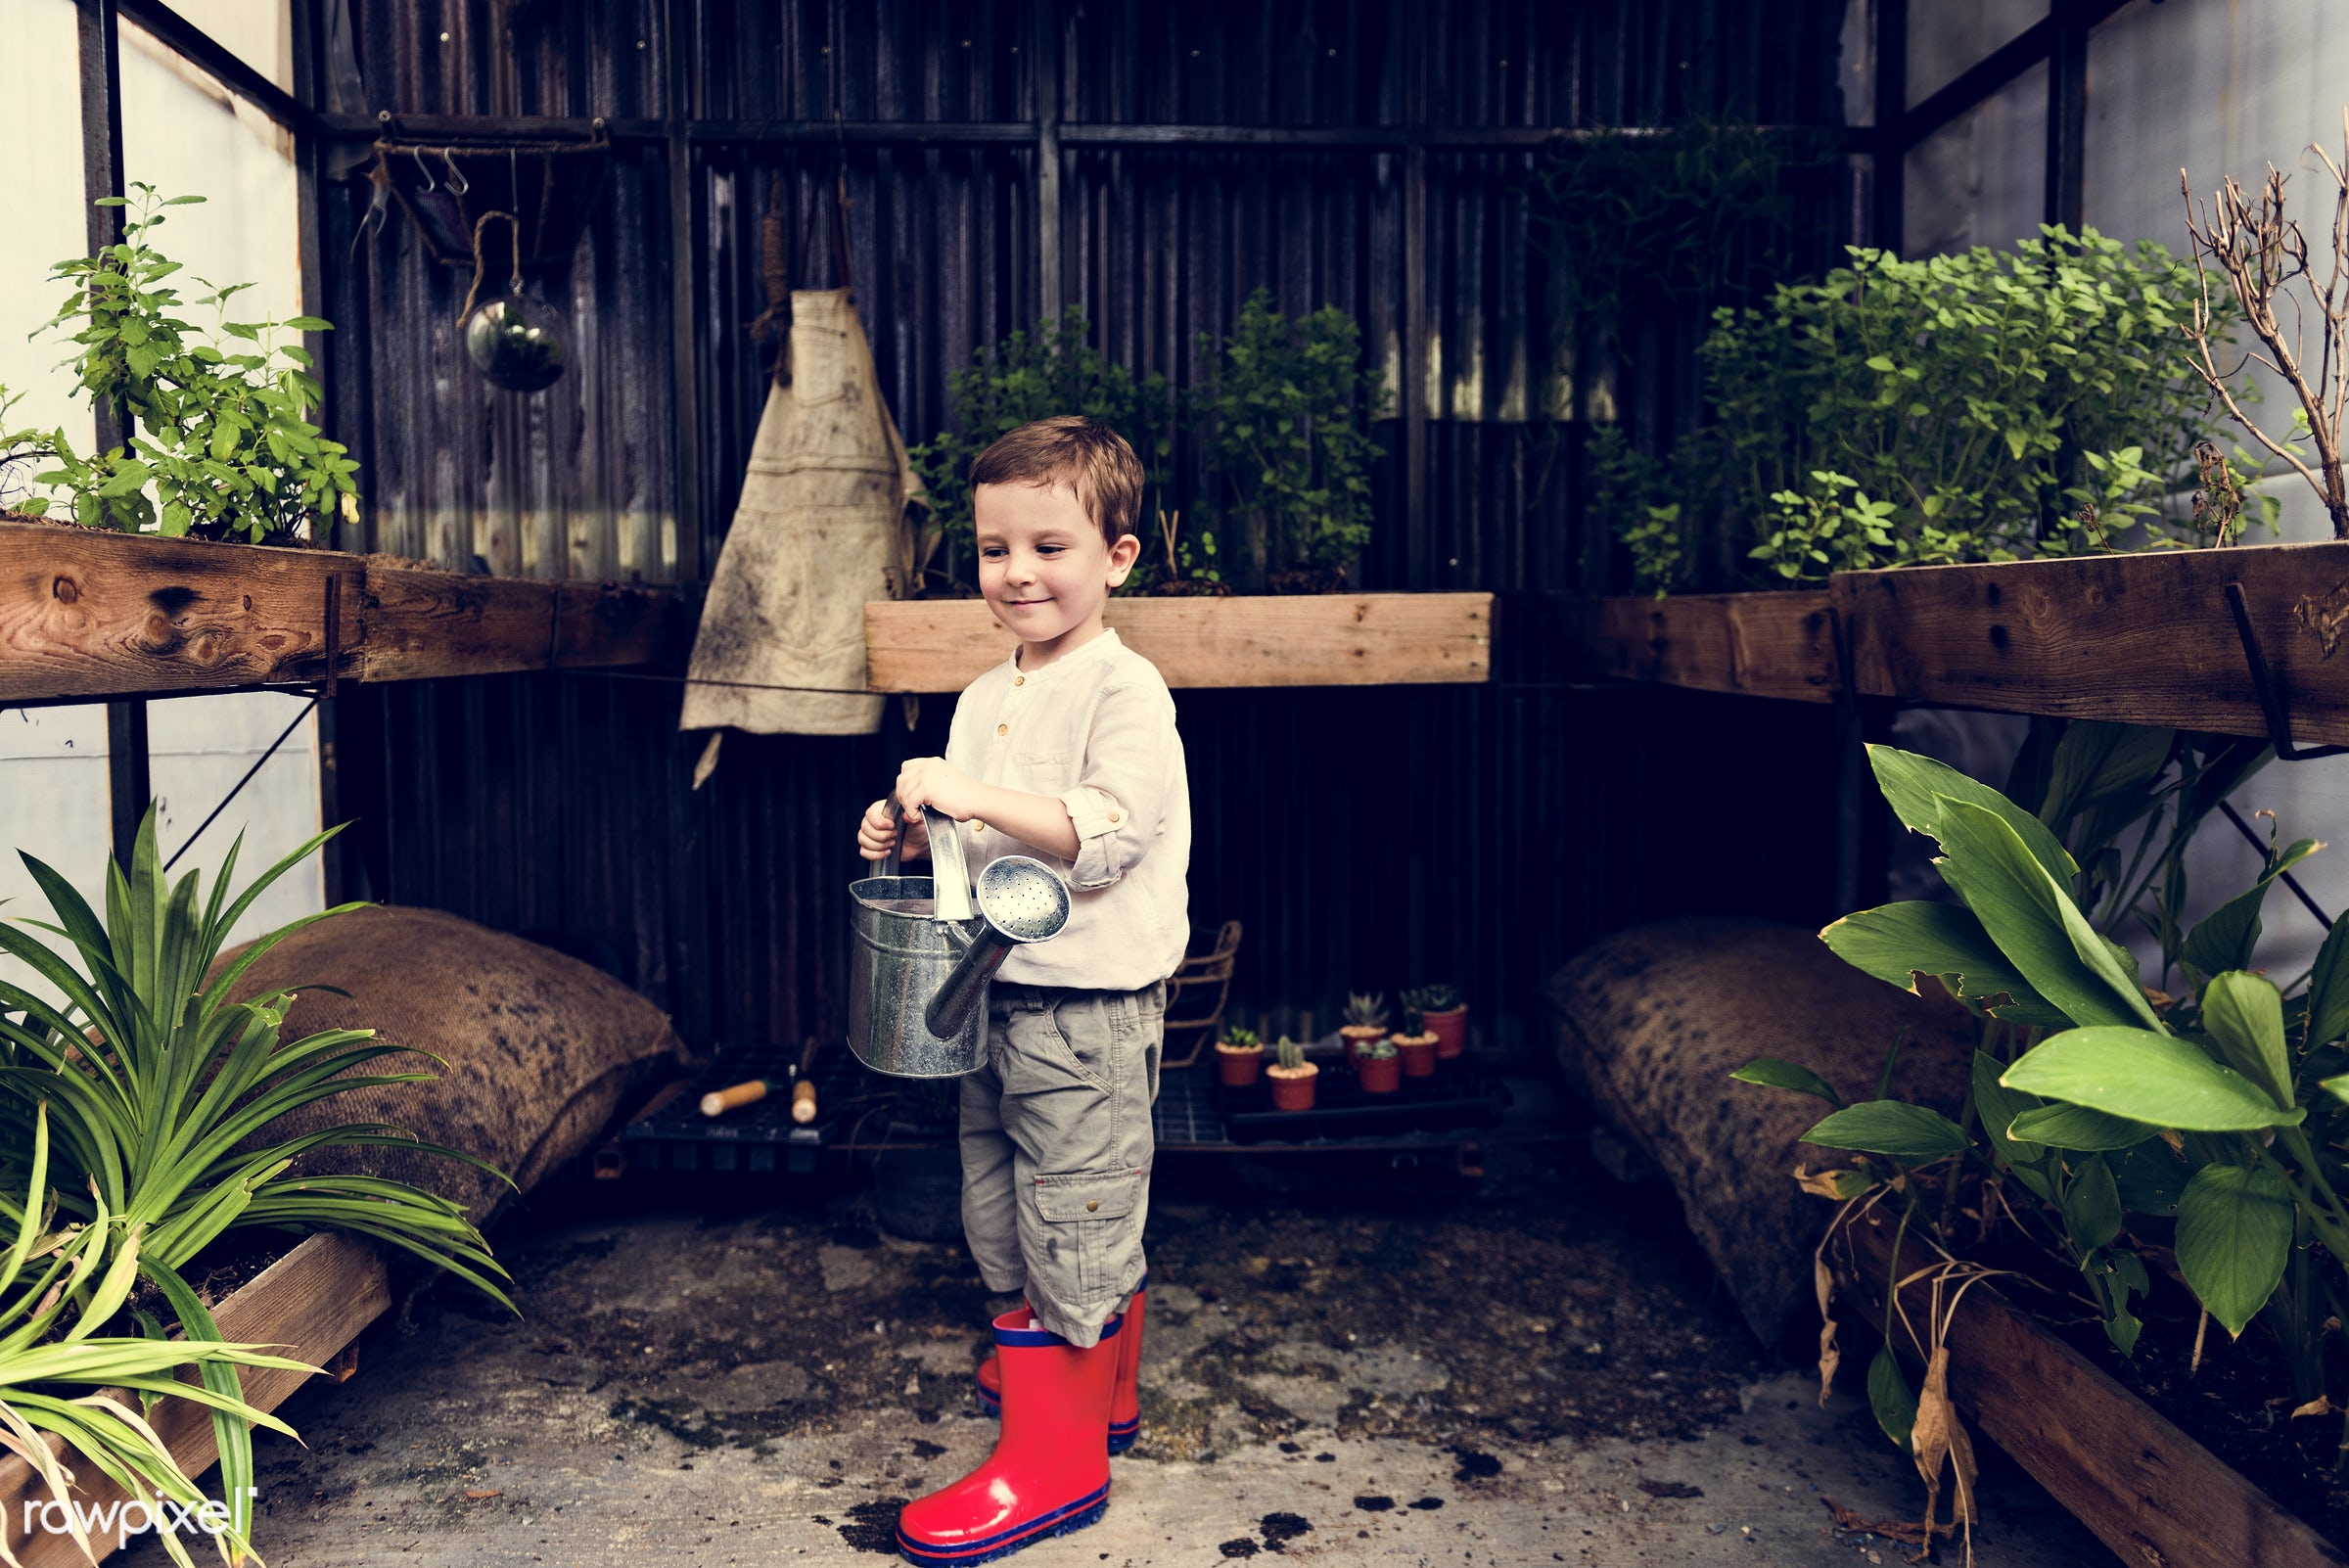 watering, plant, children, recreation, people, kid, child, nature, interest, ecology, freetime, childhood, passion,...